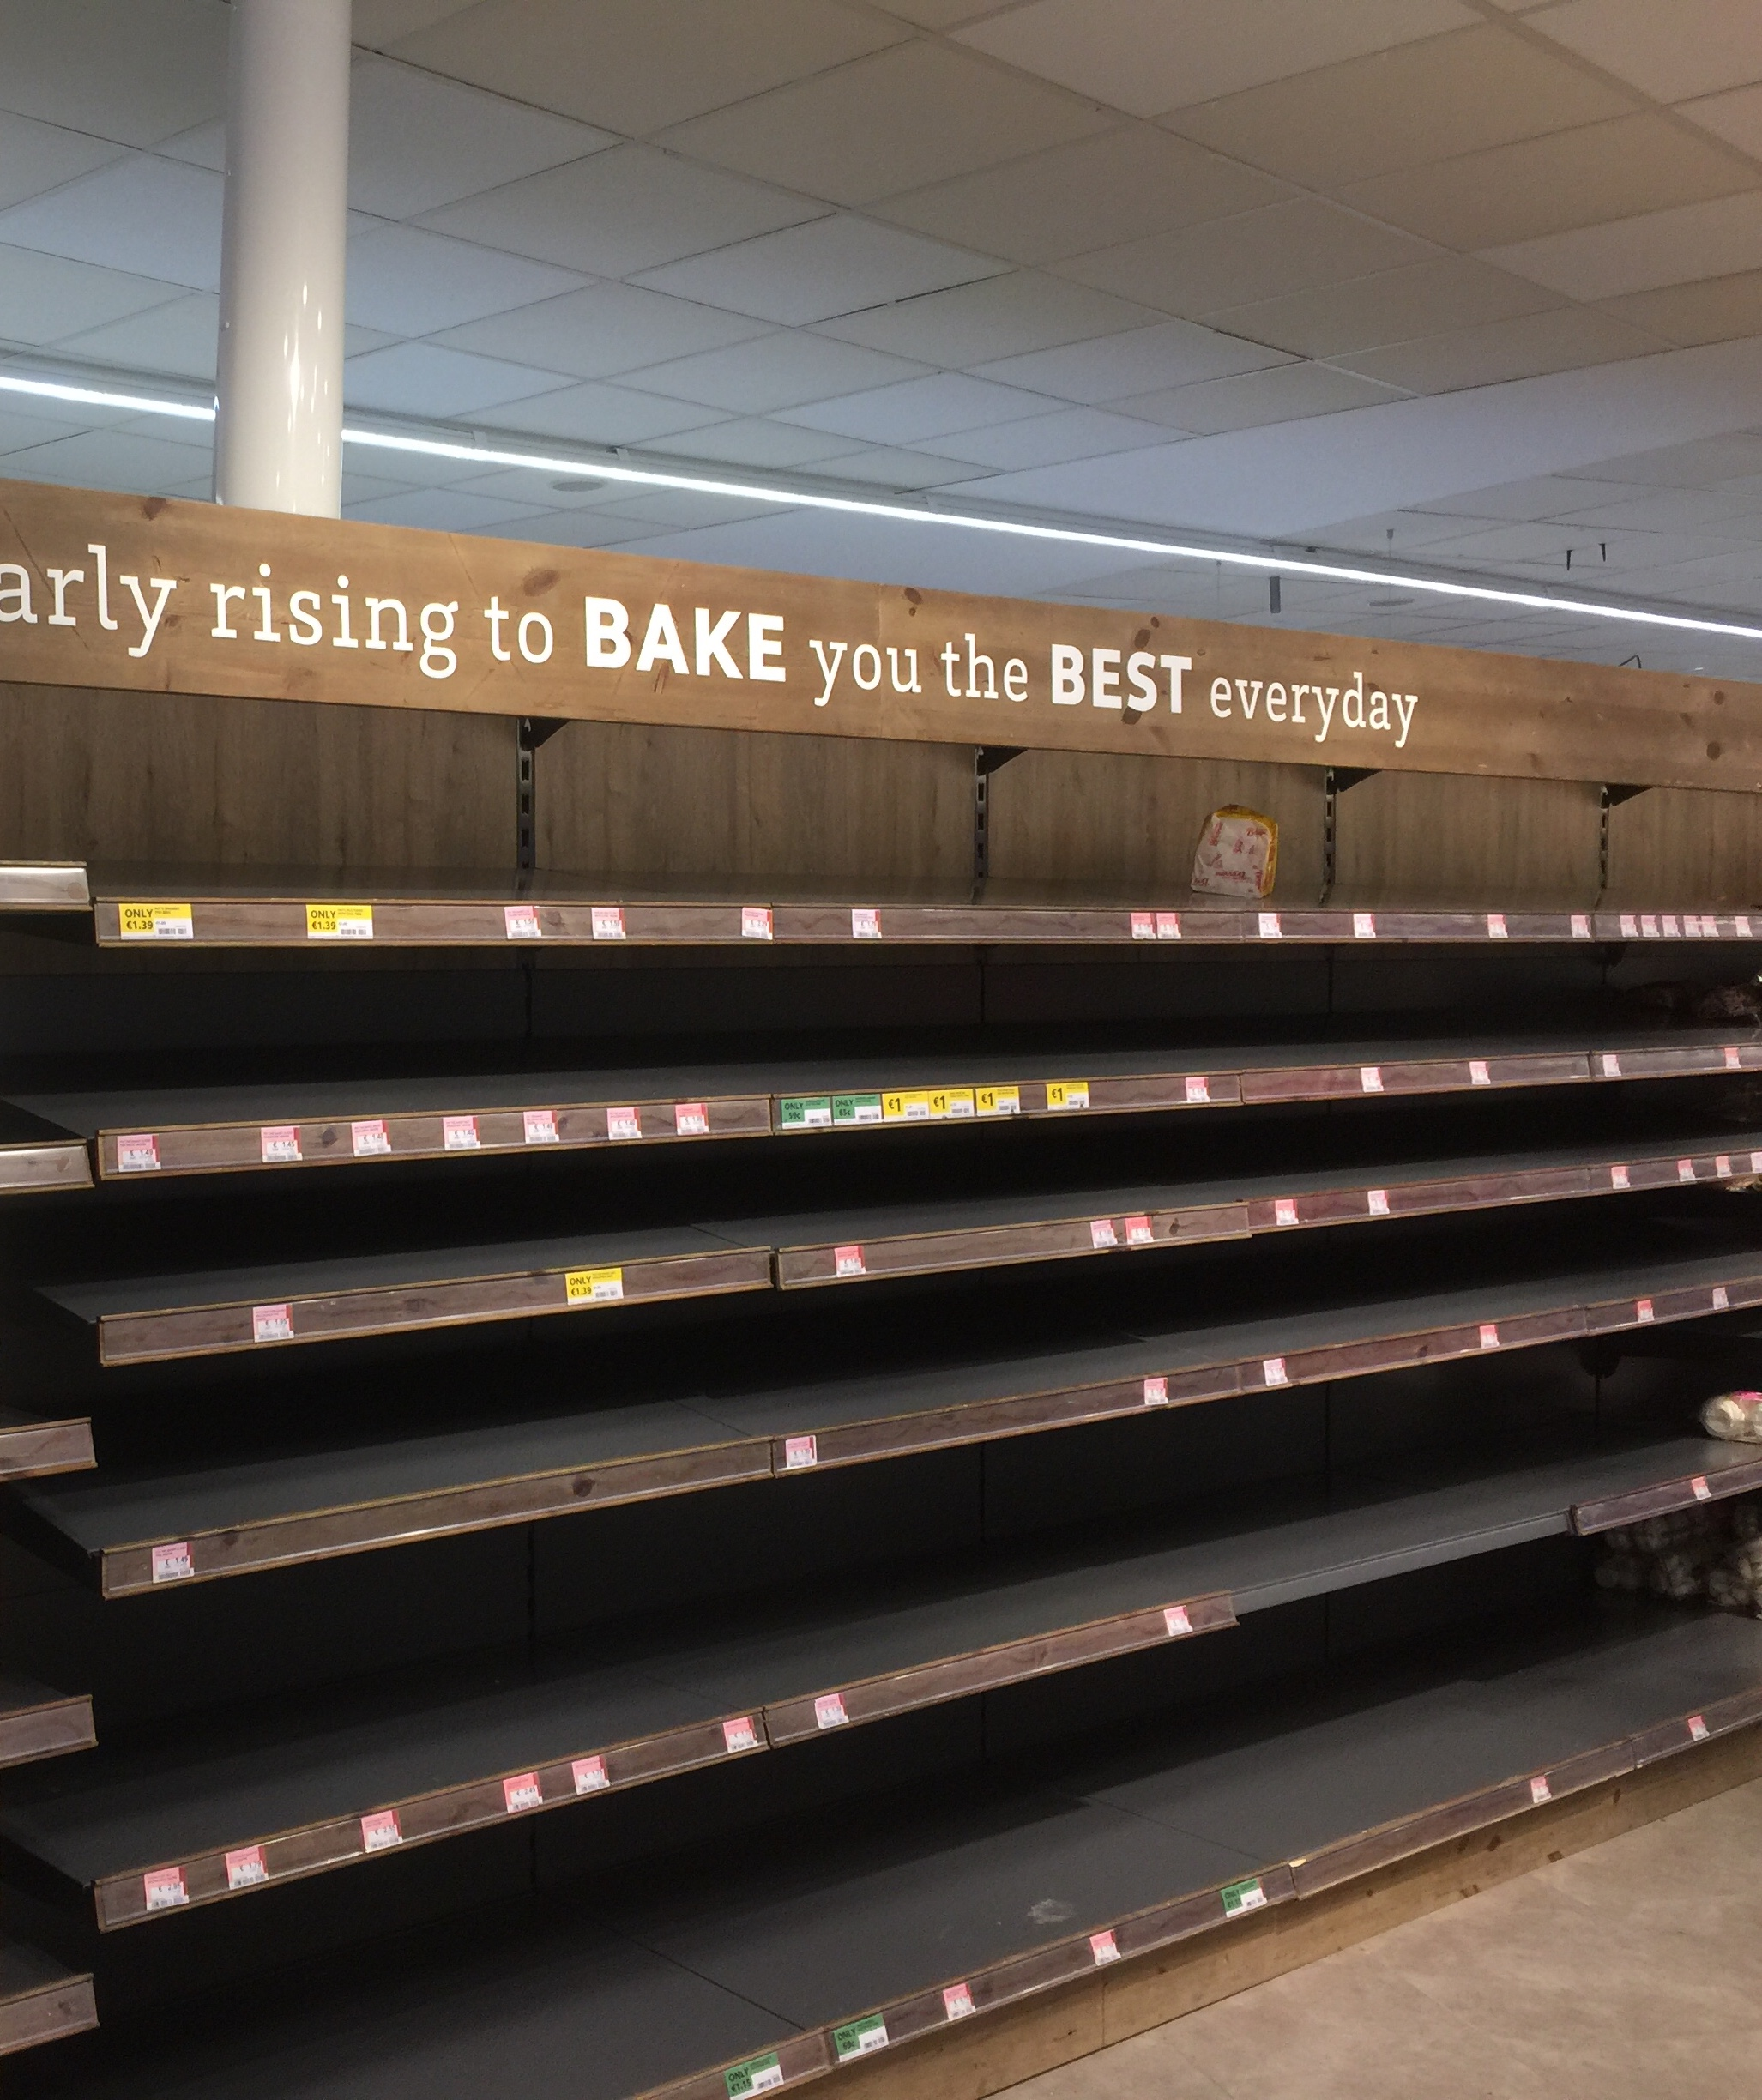 Empty bread shelves before snow arrived